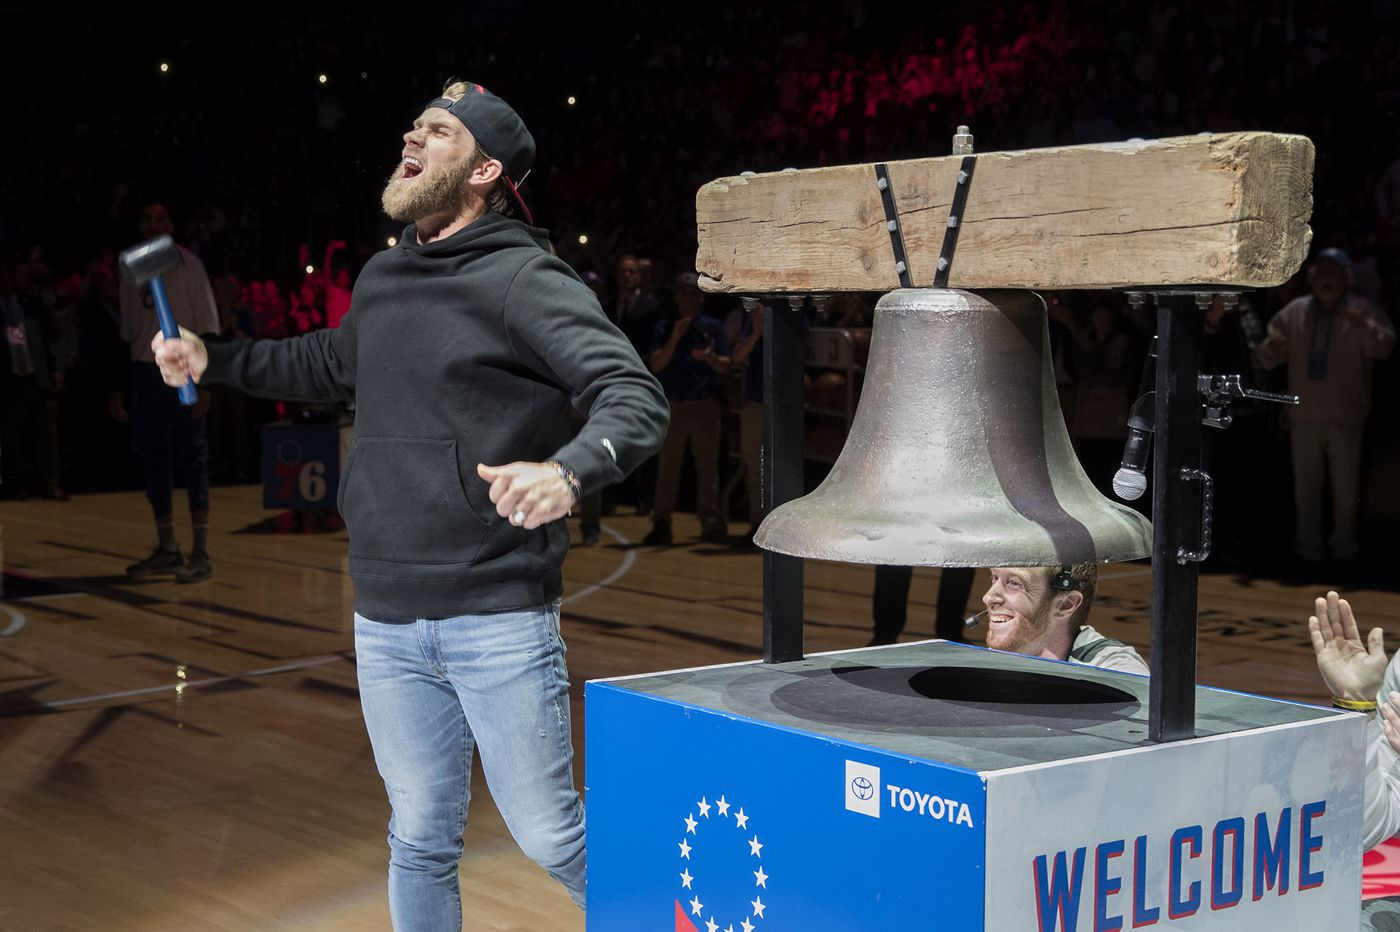 Watch: Bryce Harper rings the bell before Sixers-Bucks game, hangs out with Carson Wentz and fellow Phillies star Rhys Hoskins